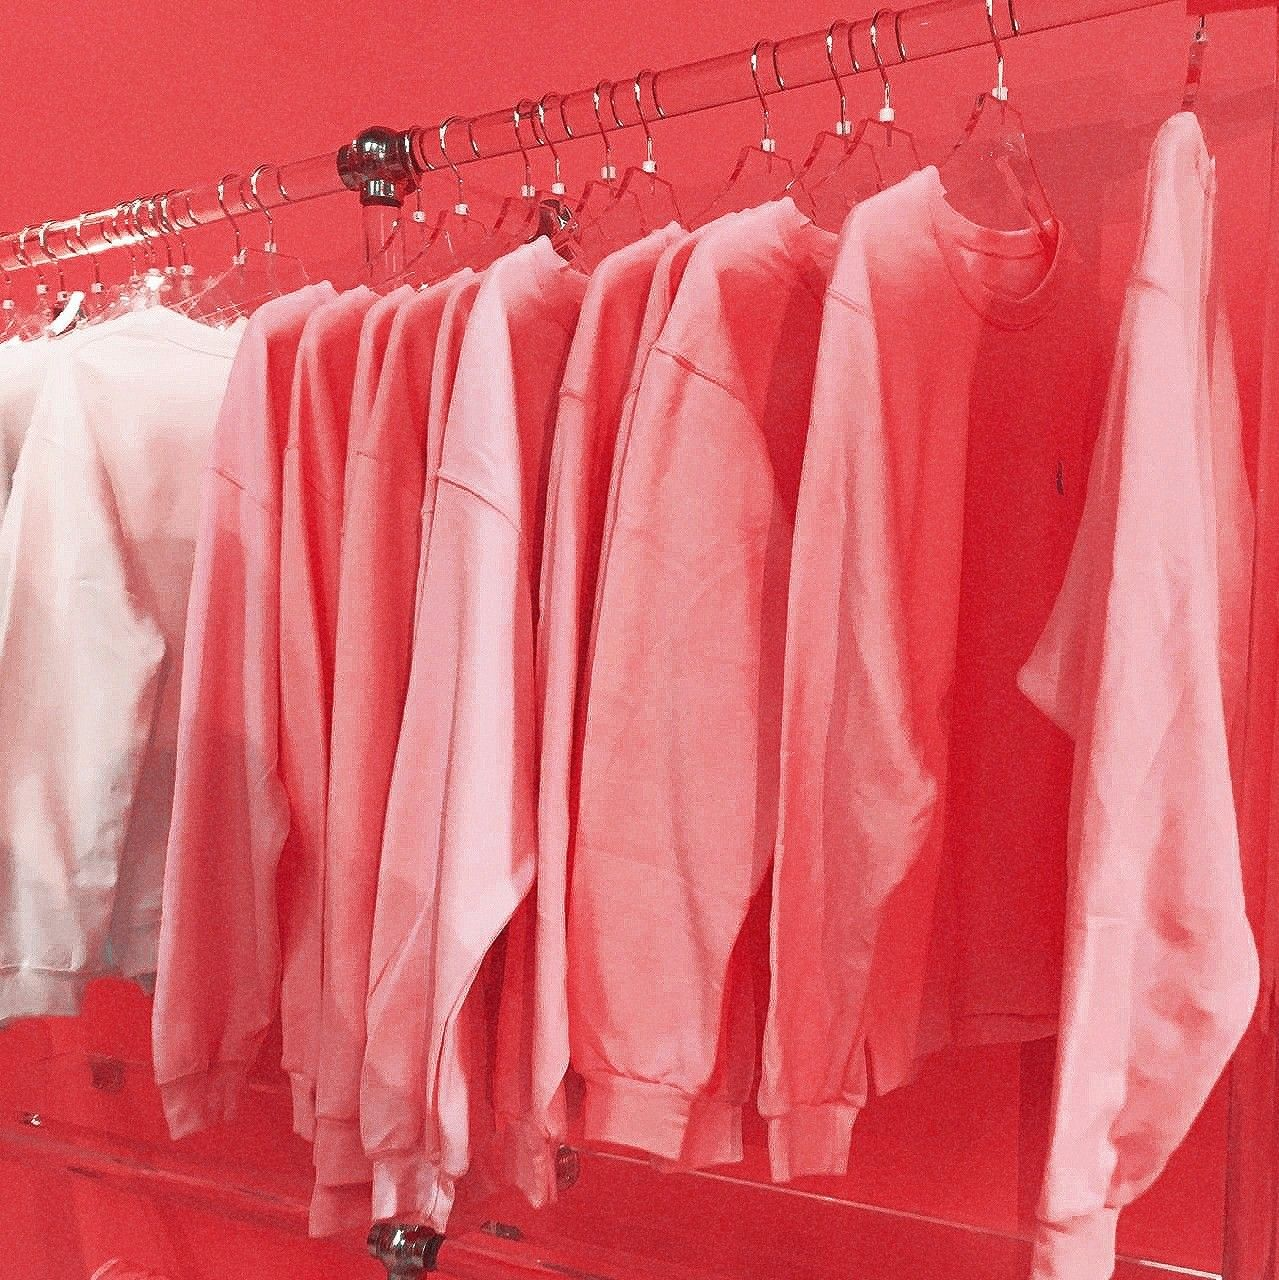 Red Aesthetic Soft Feed Redaesthetic Red Aesthetic Pastel